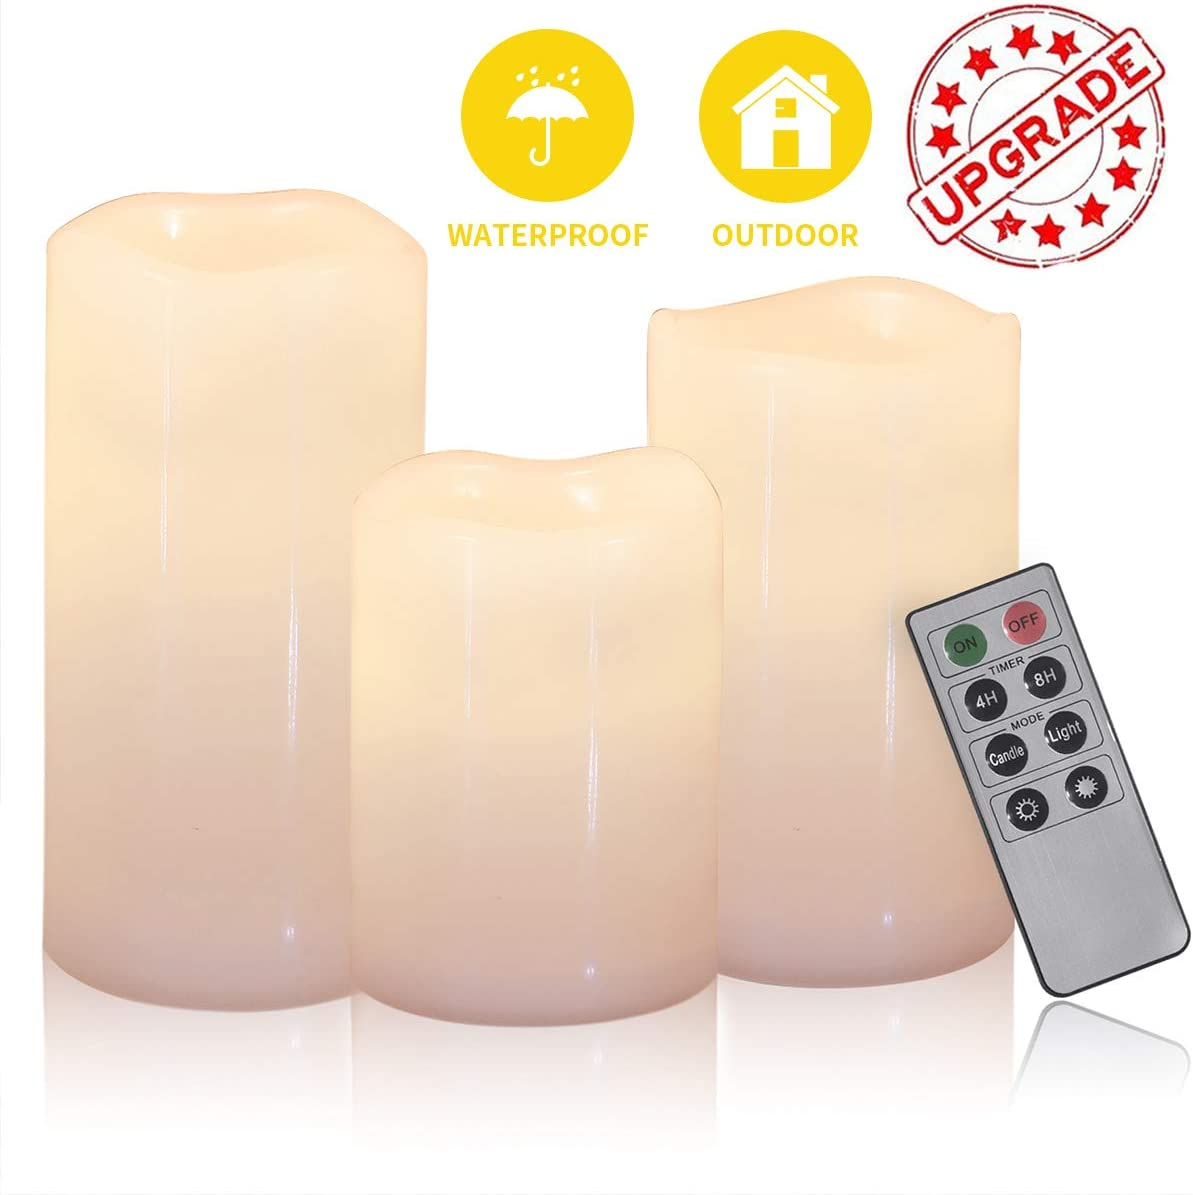 SHYMERY Outdoor Indoor Waterproof Battery Candles,Flameless LED Pillar Candles, Set of 3 H 4 5 6 x D 3 with Remote Timer for Lantern Patio Garden Home Decor Party Wedding Decoration,Warm White